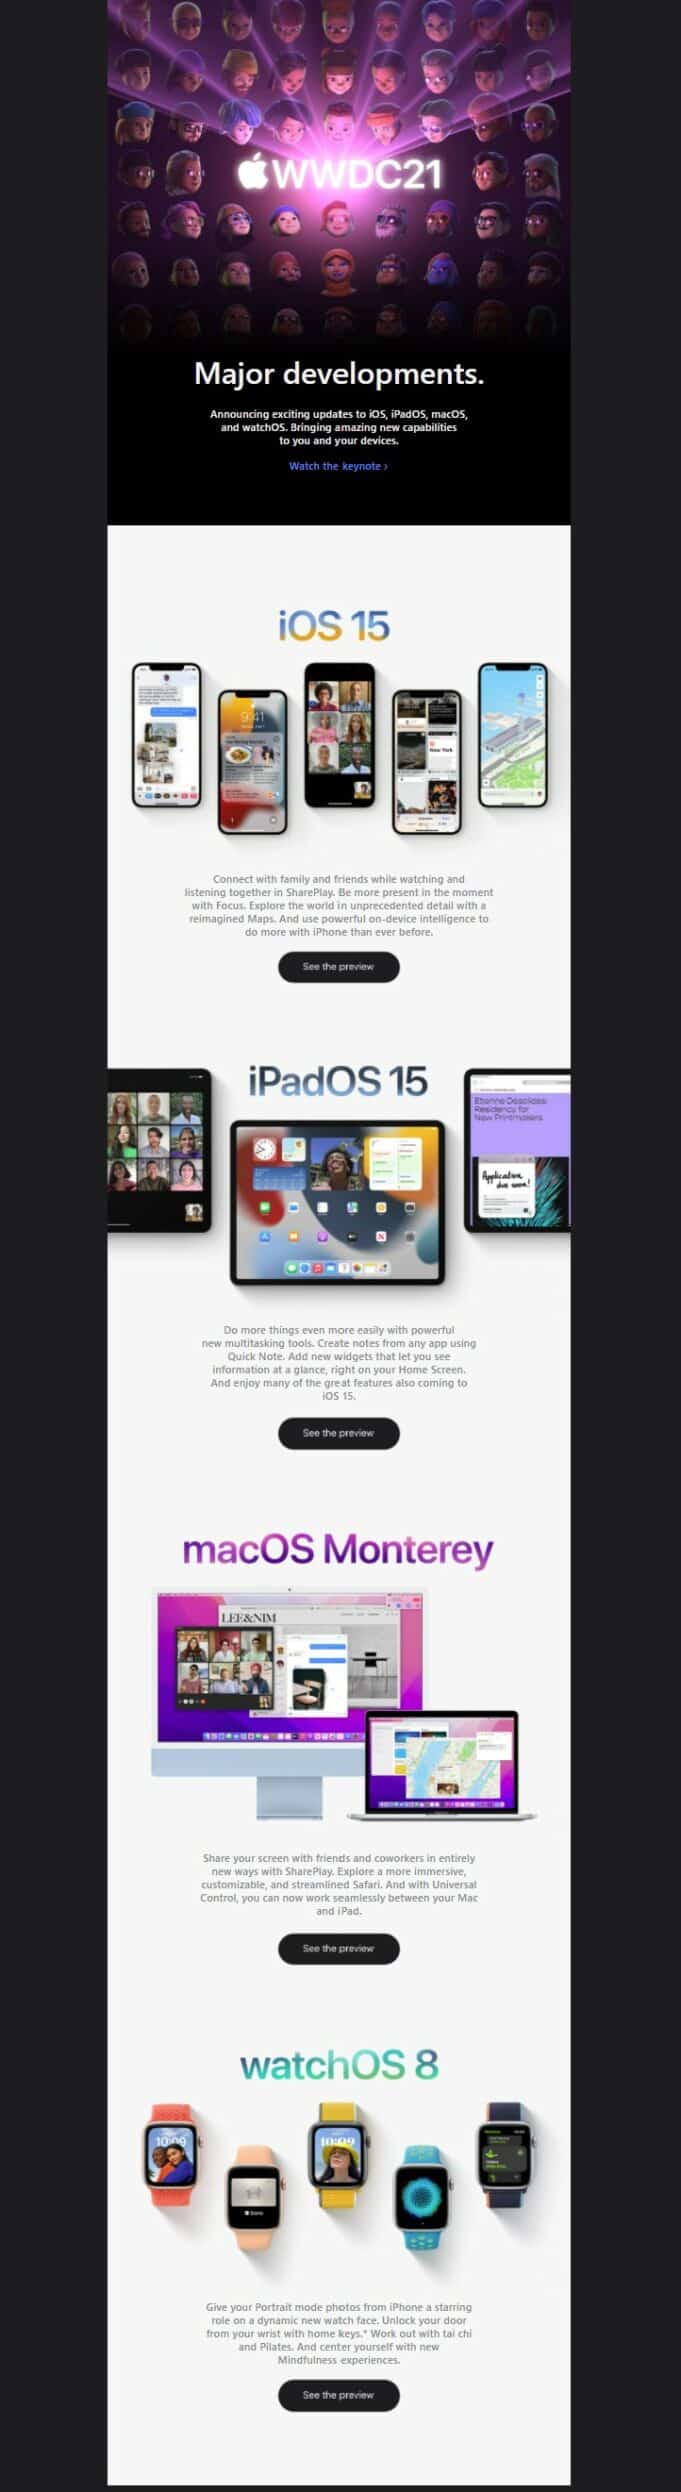 Announcing exciting updates to iOS, iPadOS, macOS, and watchOS. Bringing amazing new capabilities to you and your devices.